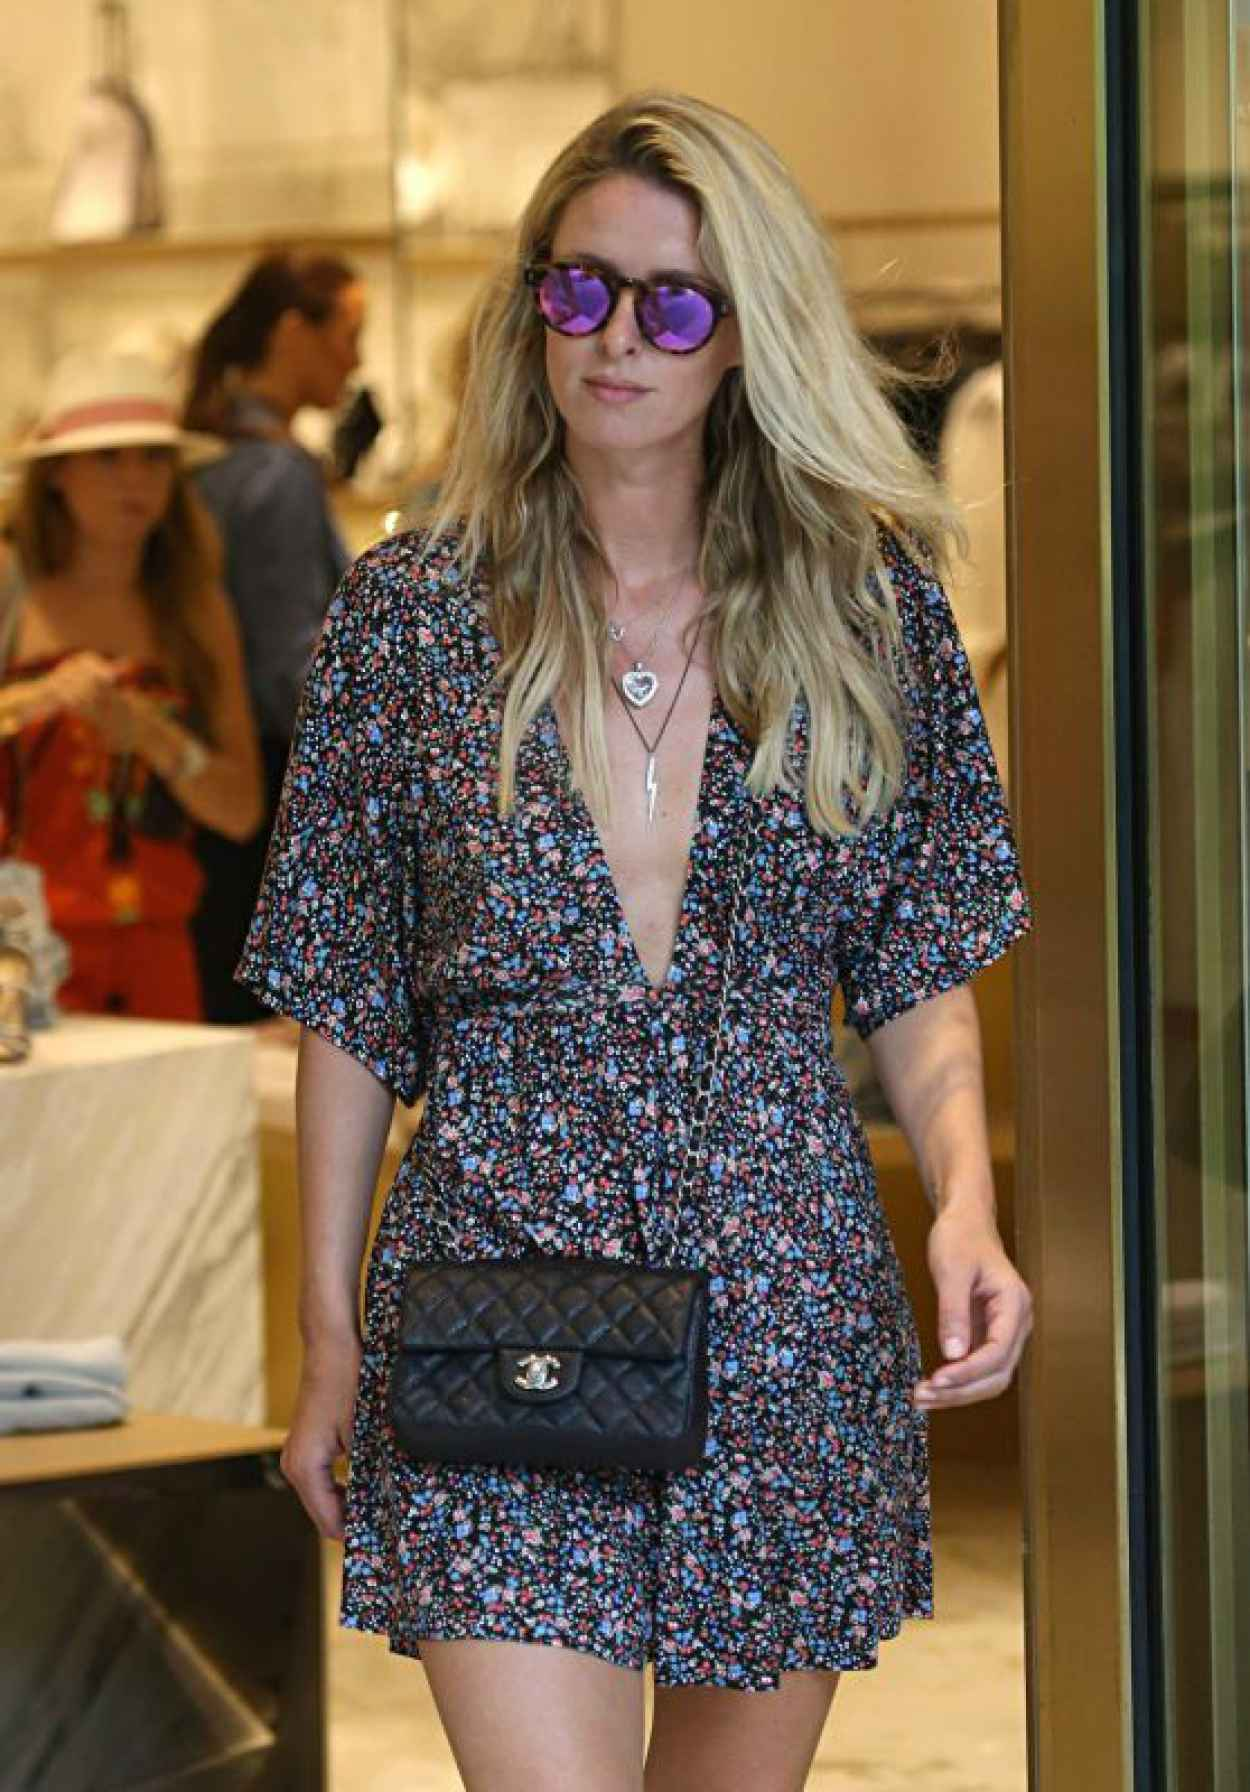 Nicky Hilton Shopping With a Friend at Bal Harbour Mall in Miami, June 2015-1